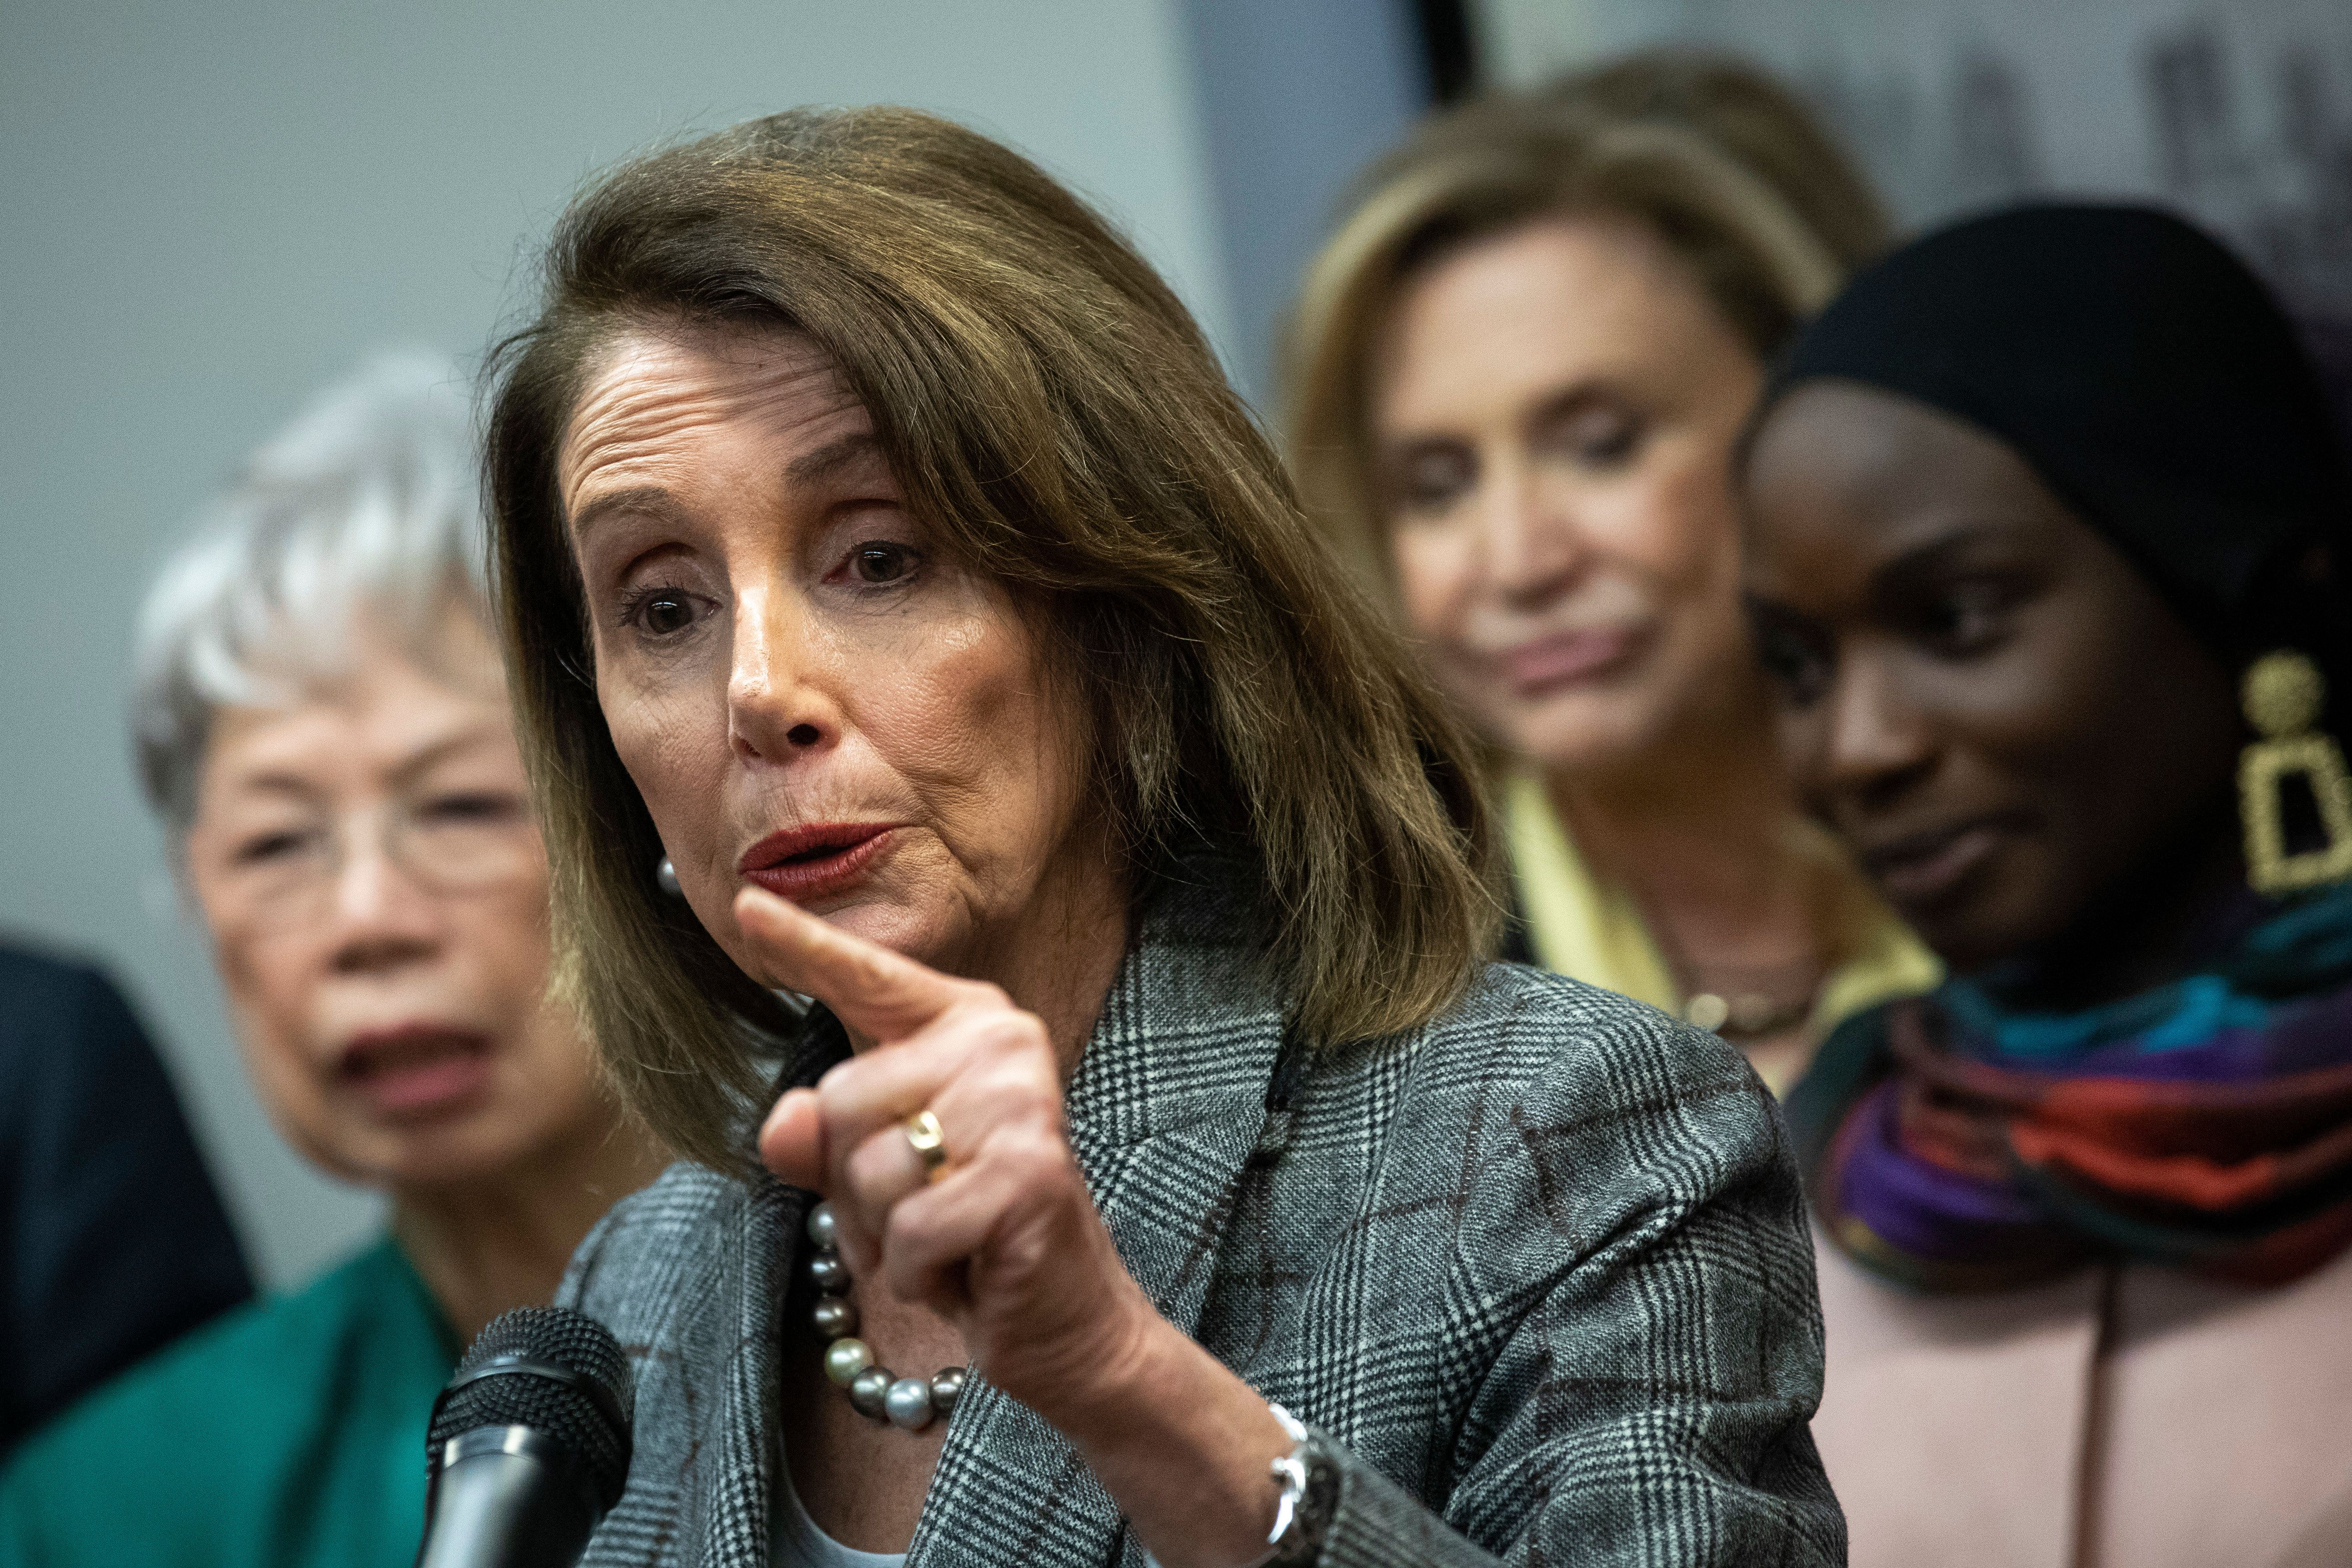 House Speaker Nancy Pelosi says Democrats will fight for transparency in the release of special counsel Robert Mueller's find